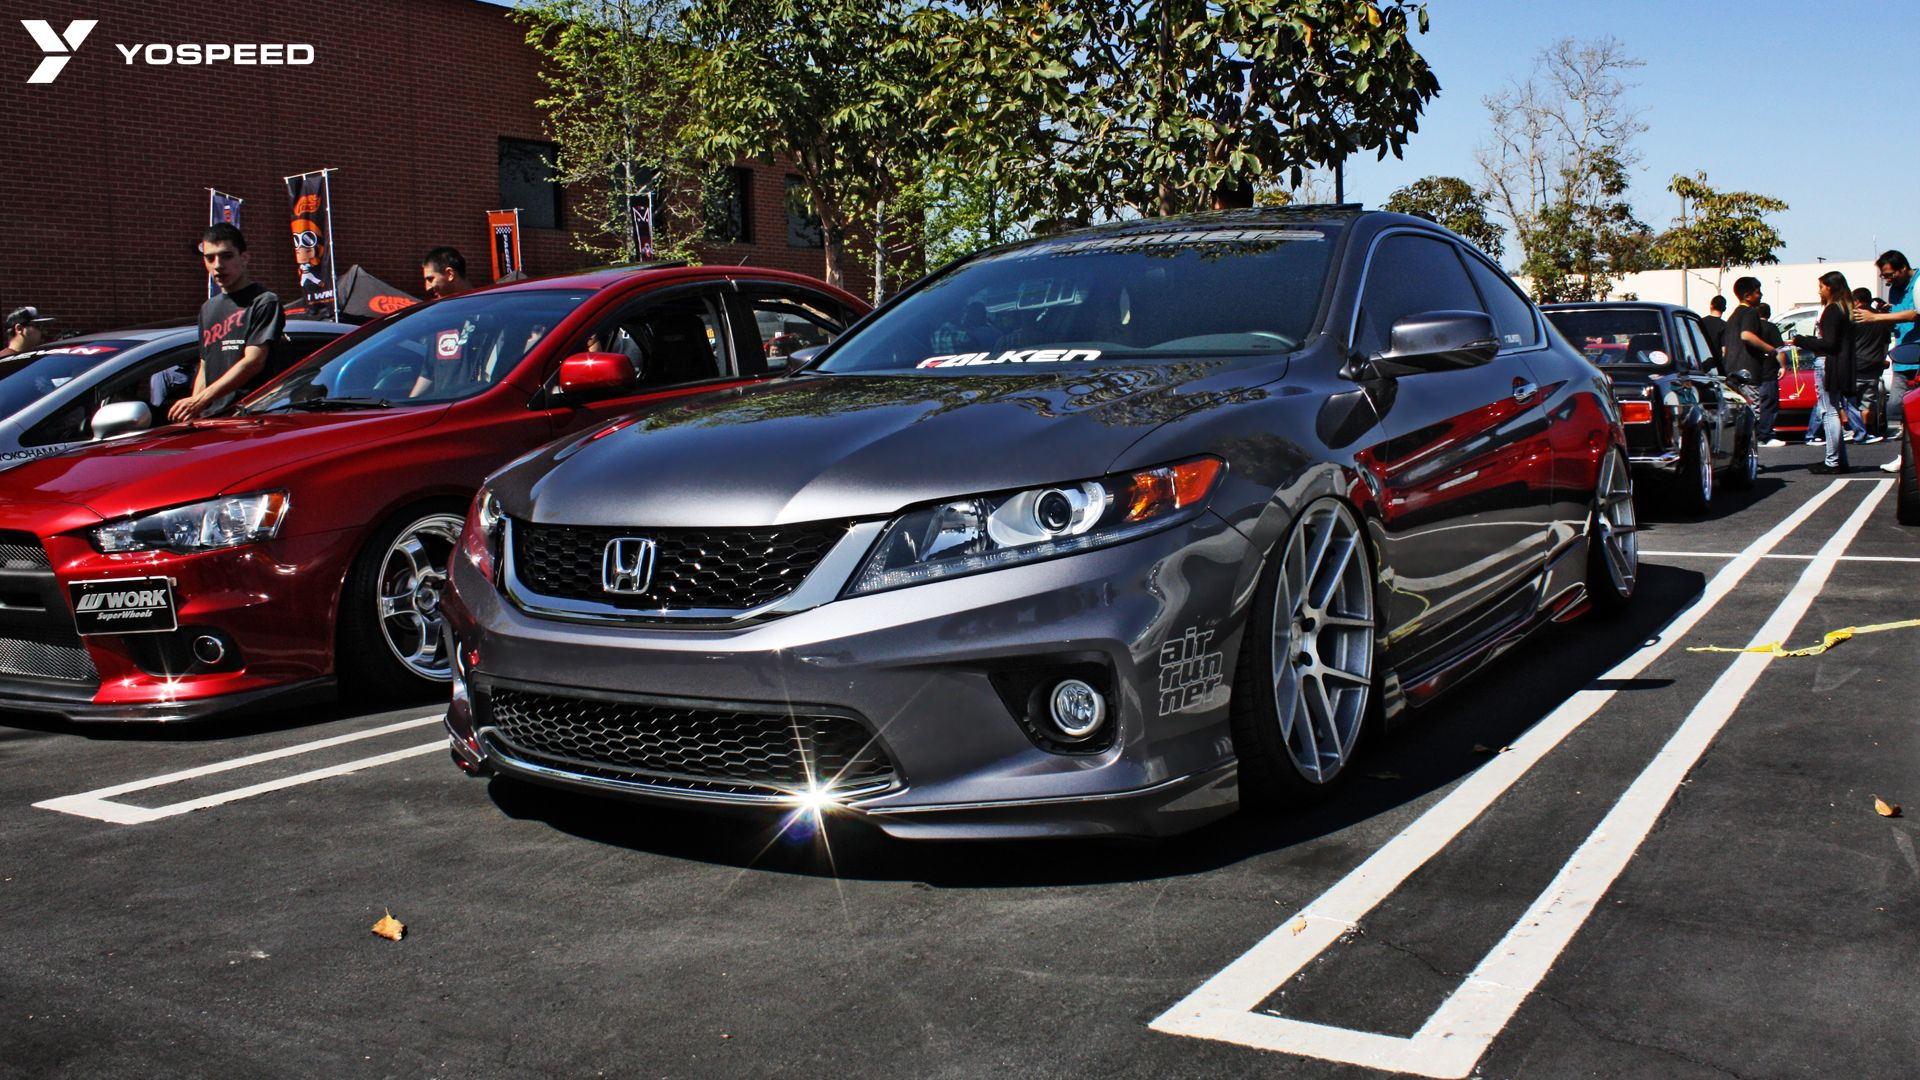 wholesale dealer f4a76 a7975 ... accord coupe red sport 2011 - Buscar con Google ...